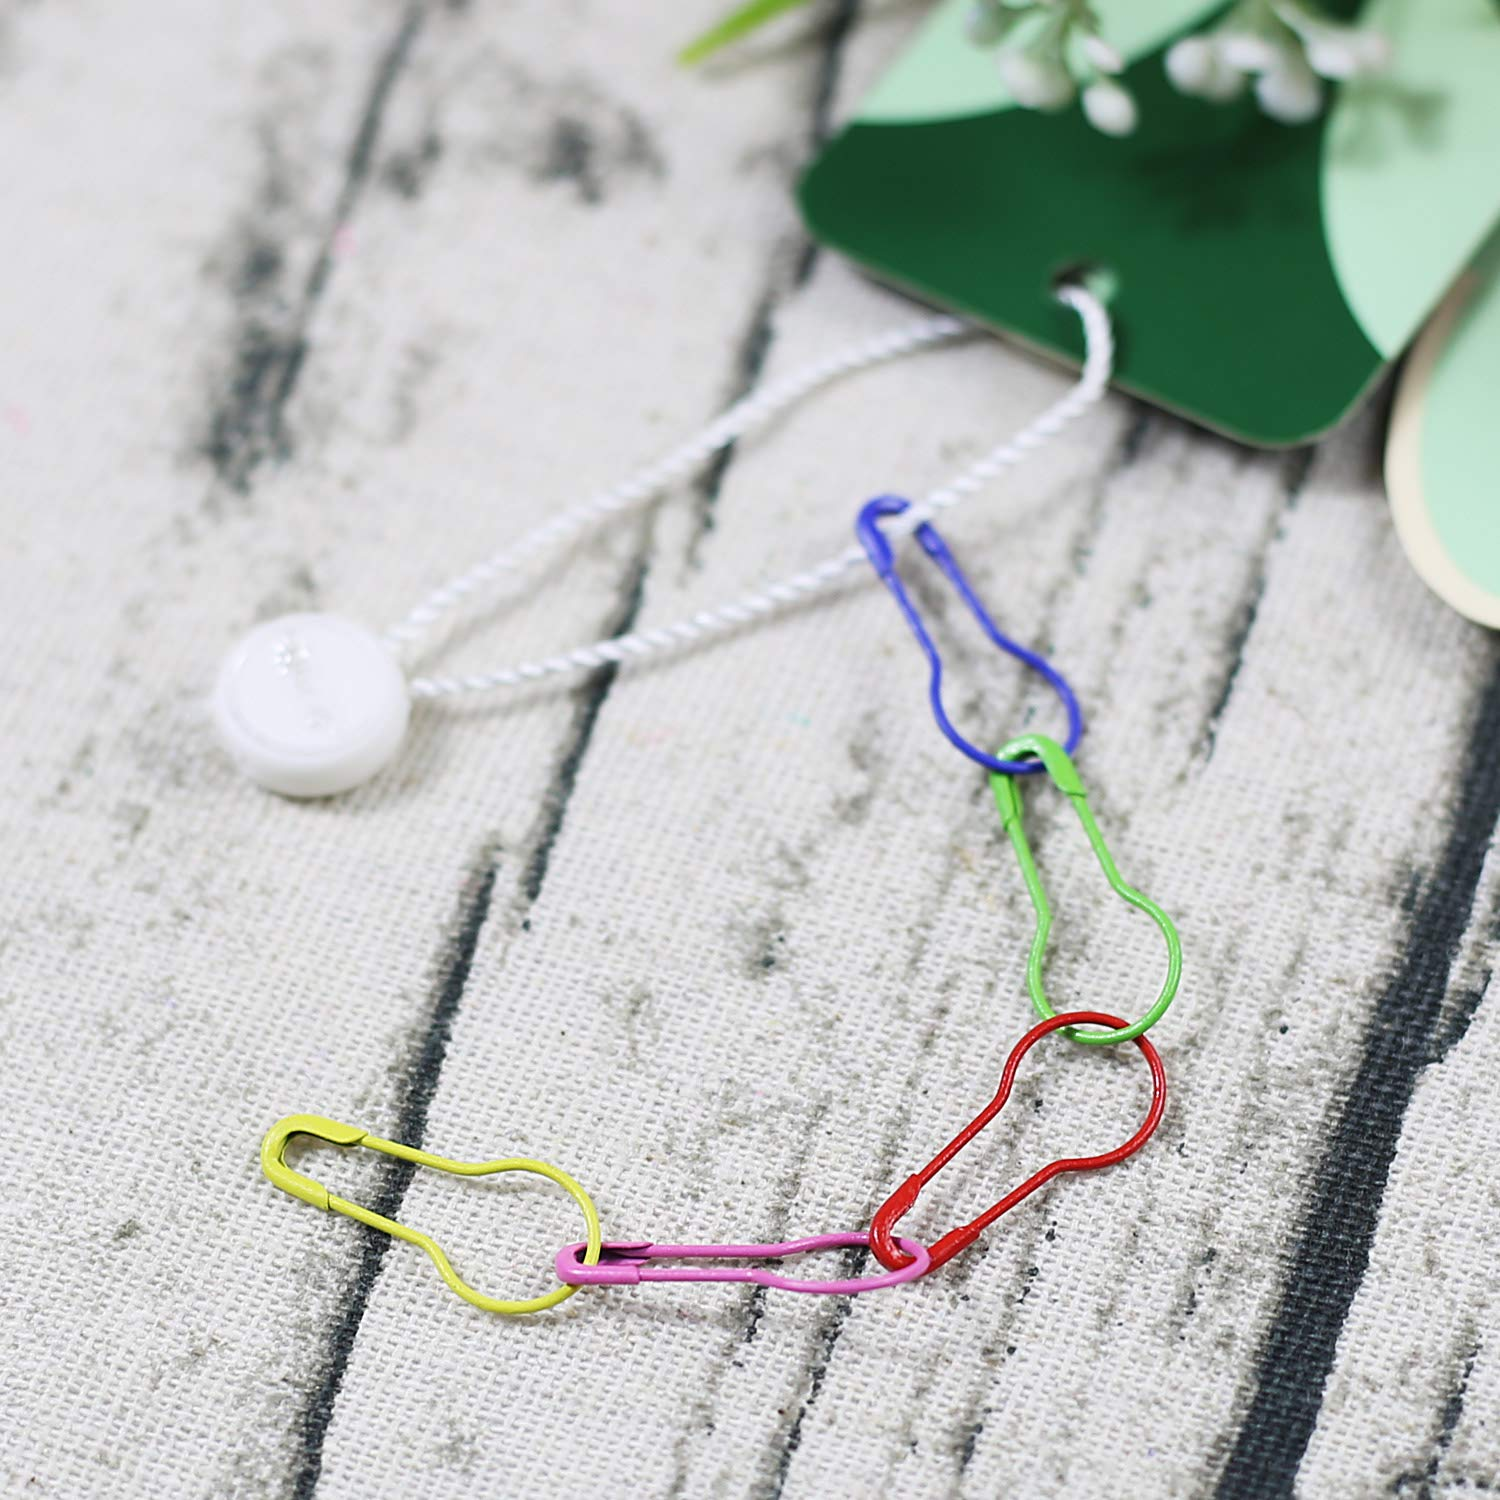 Knitting Stitch Marker Sewing Clothing DIY (300 PCS) AnMiao Star 10 Colors Safety Pins Gourd Pins for Knitting Stitch Markers